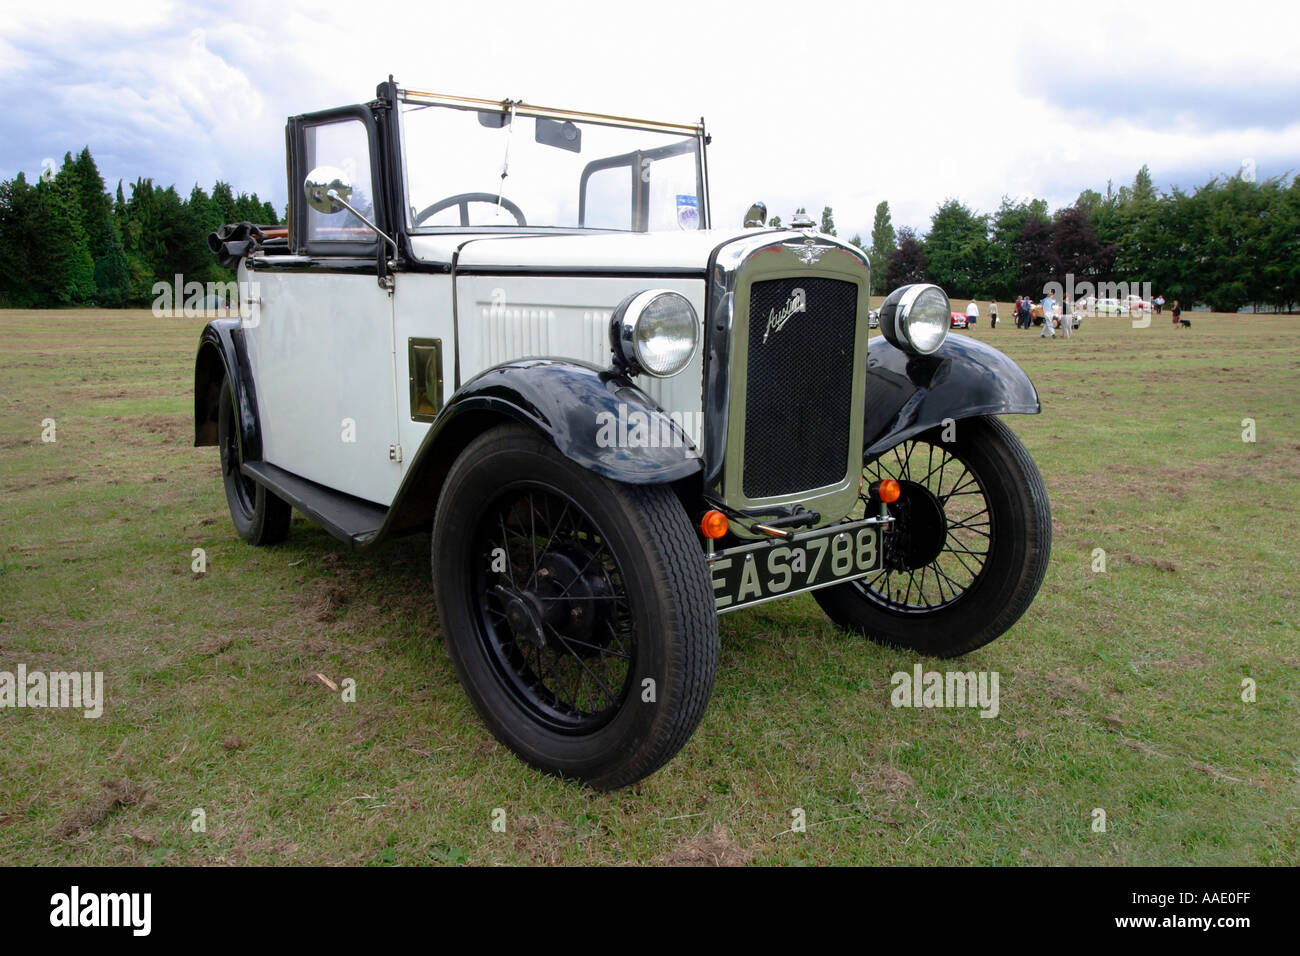 Austin 7 convertible car at a Vintage and veteran car show in Longbridge Birmingham near the old Austin factory - Stock Image